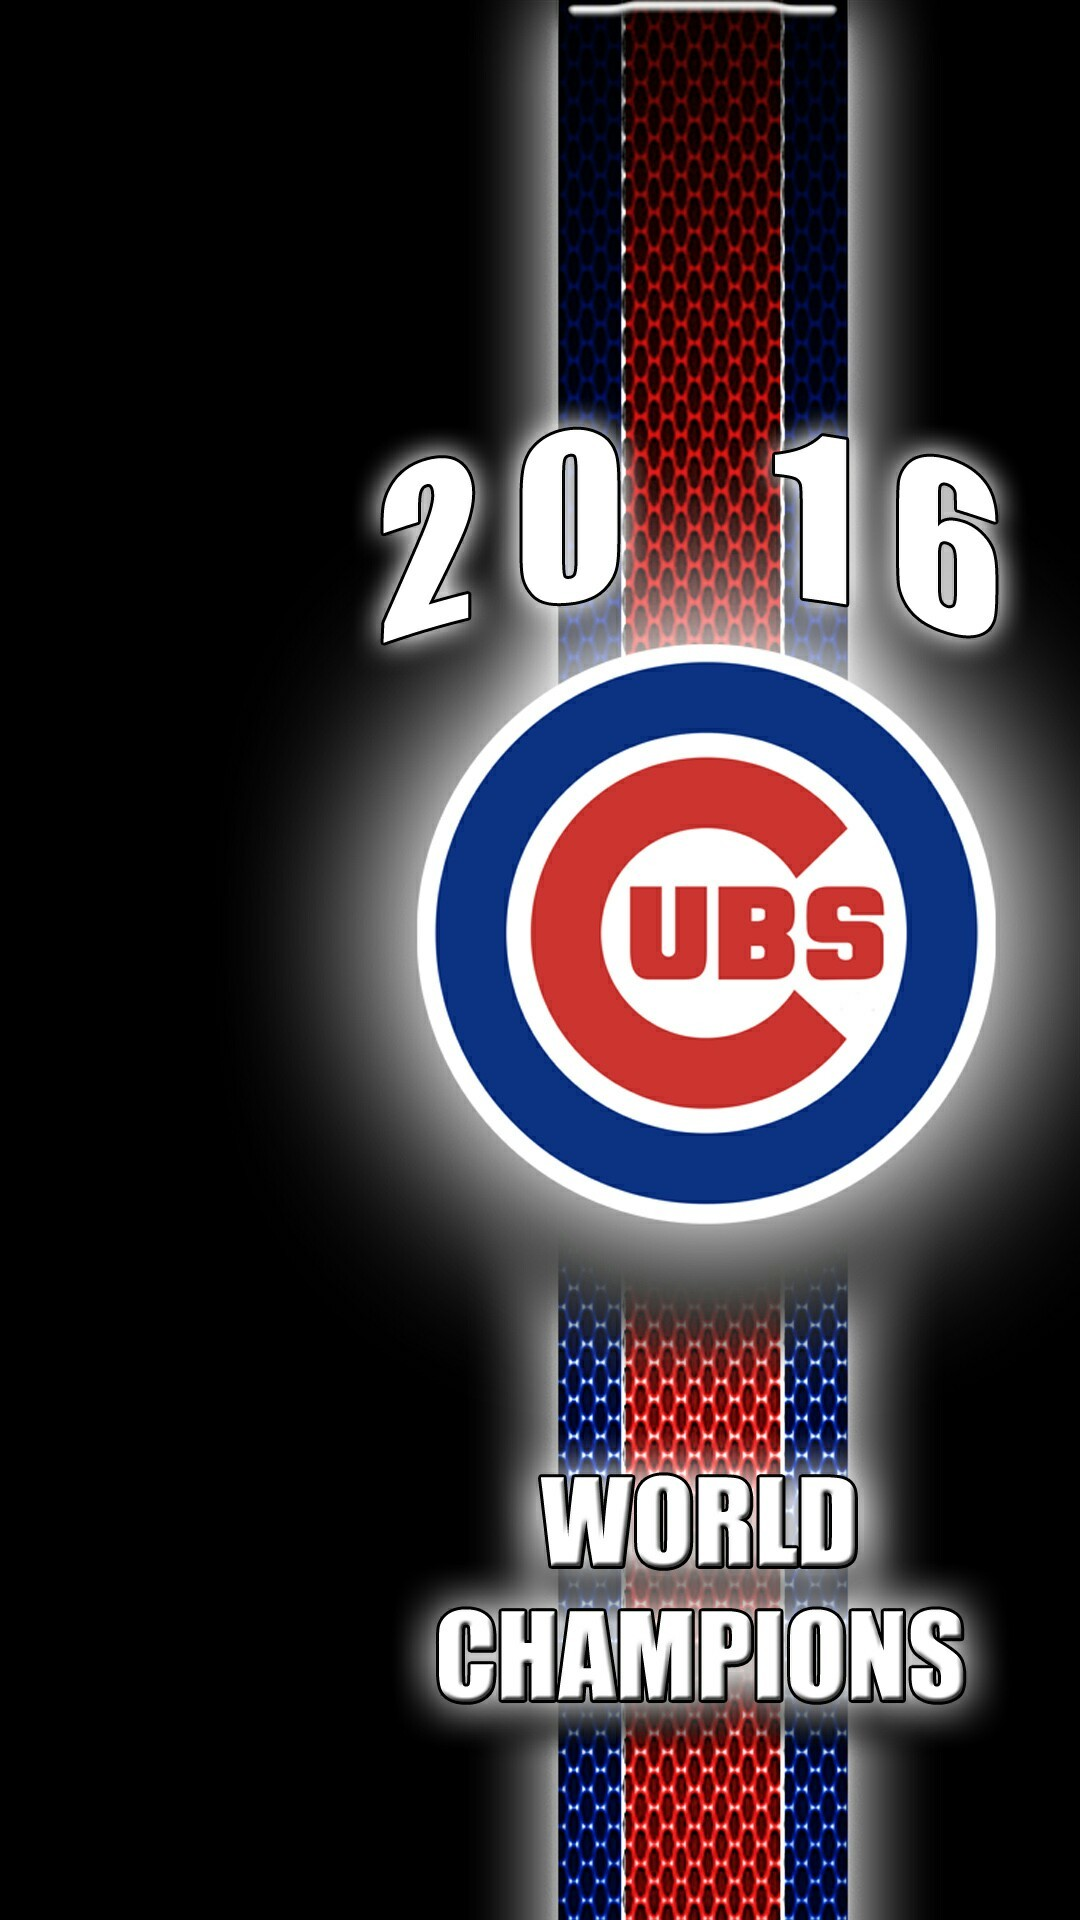 Cubs wallpaper screensavers 71 images - Cubs background ...